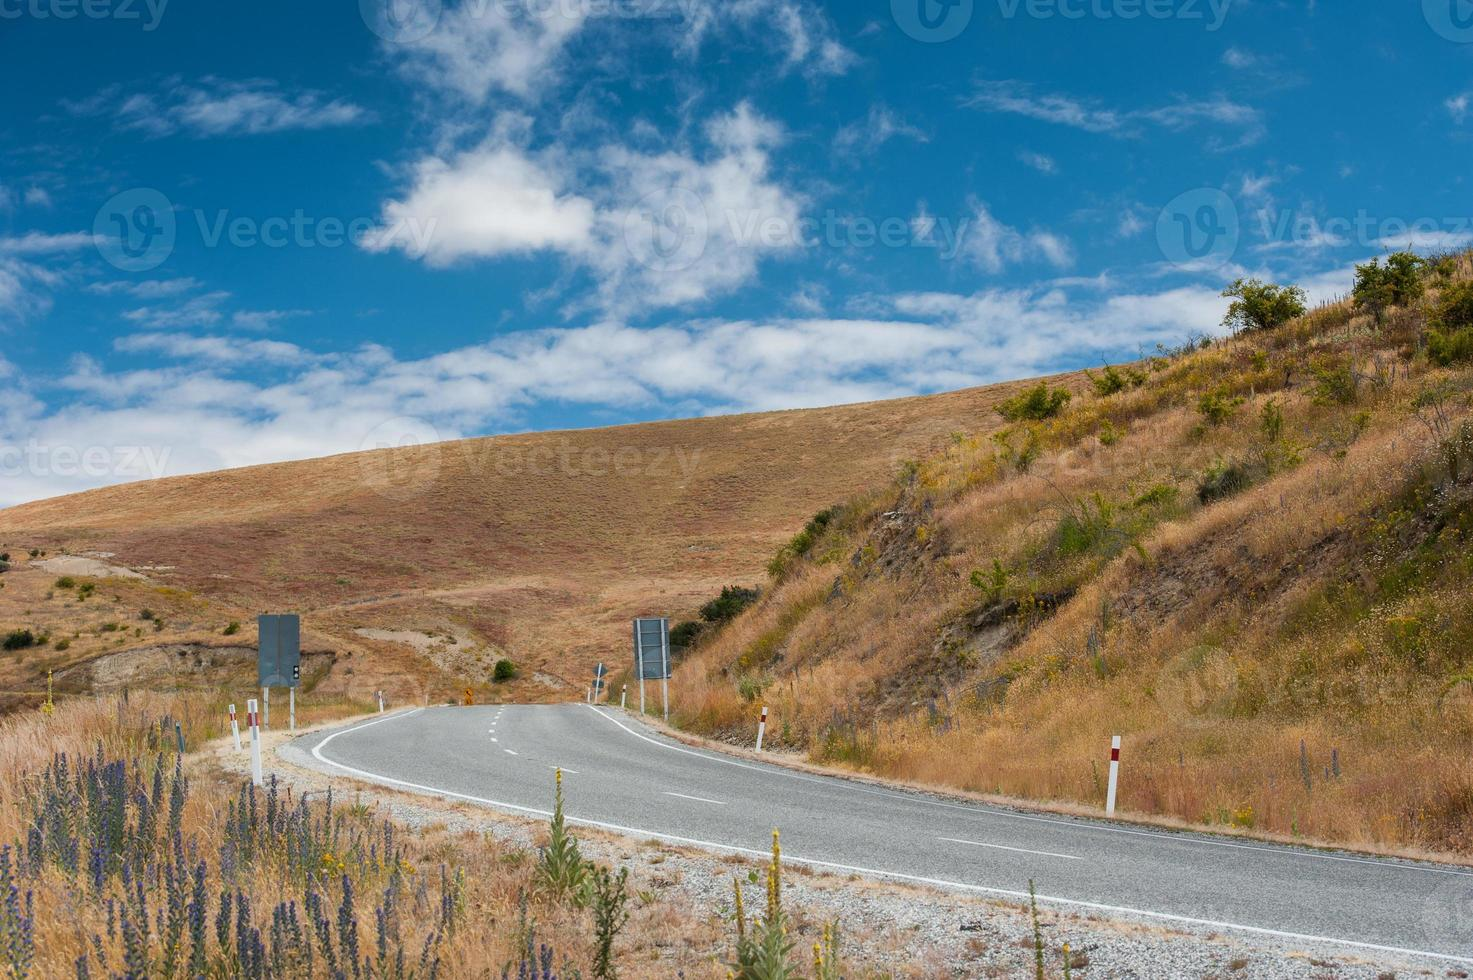 Curve road to blue sky photo